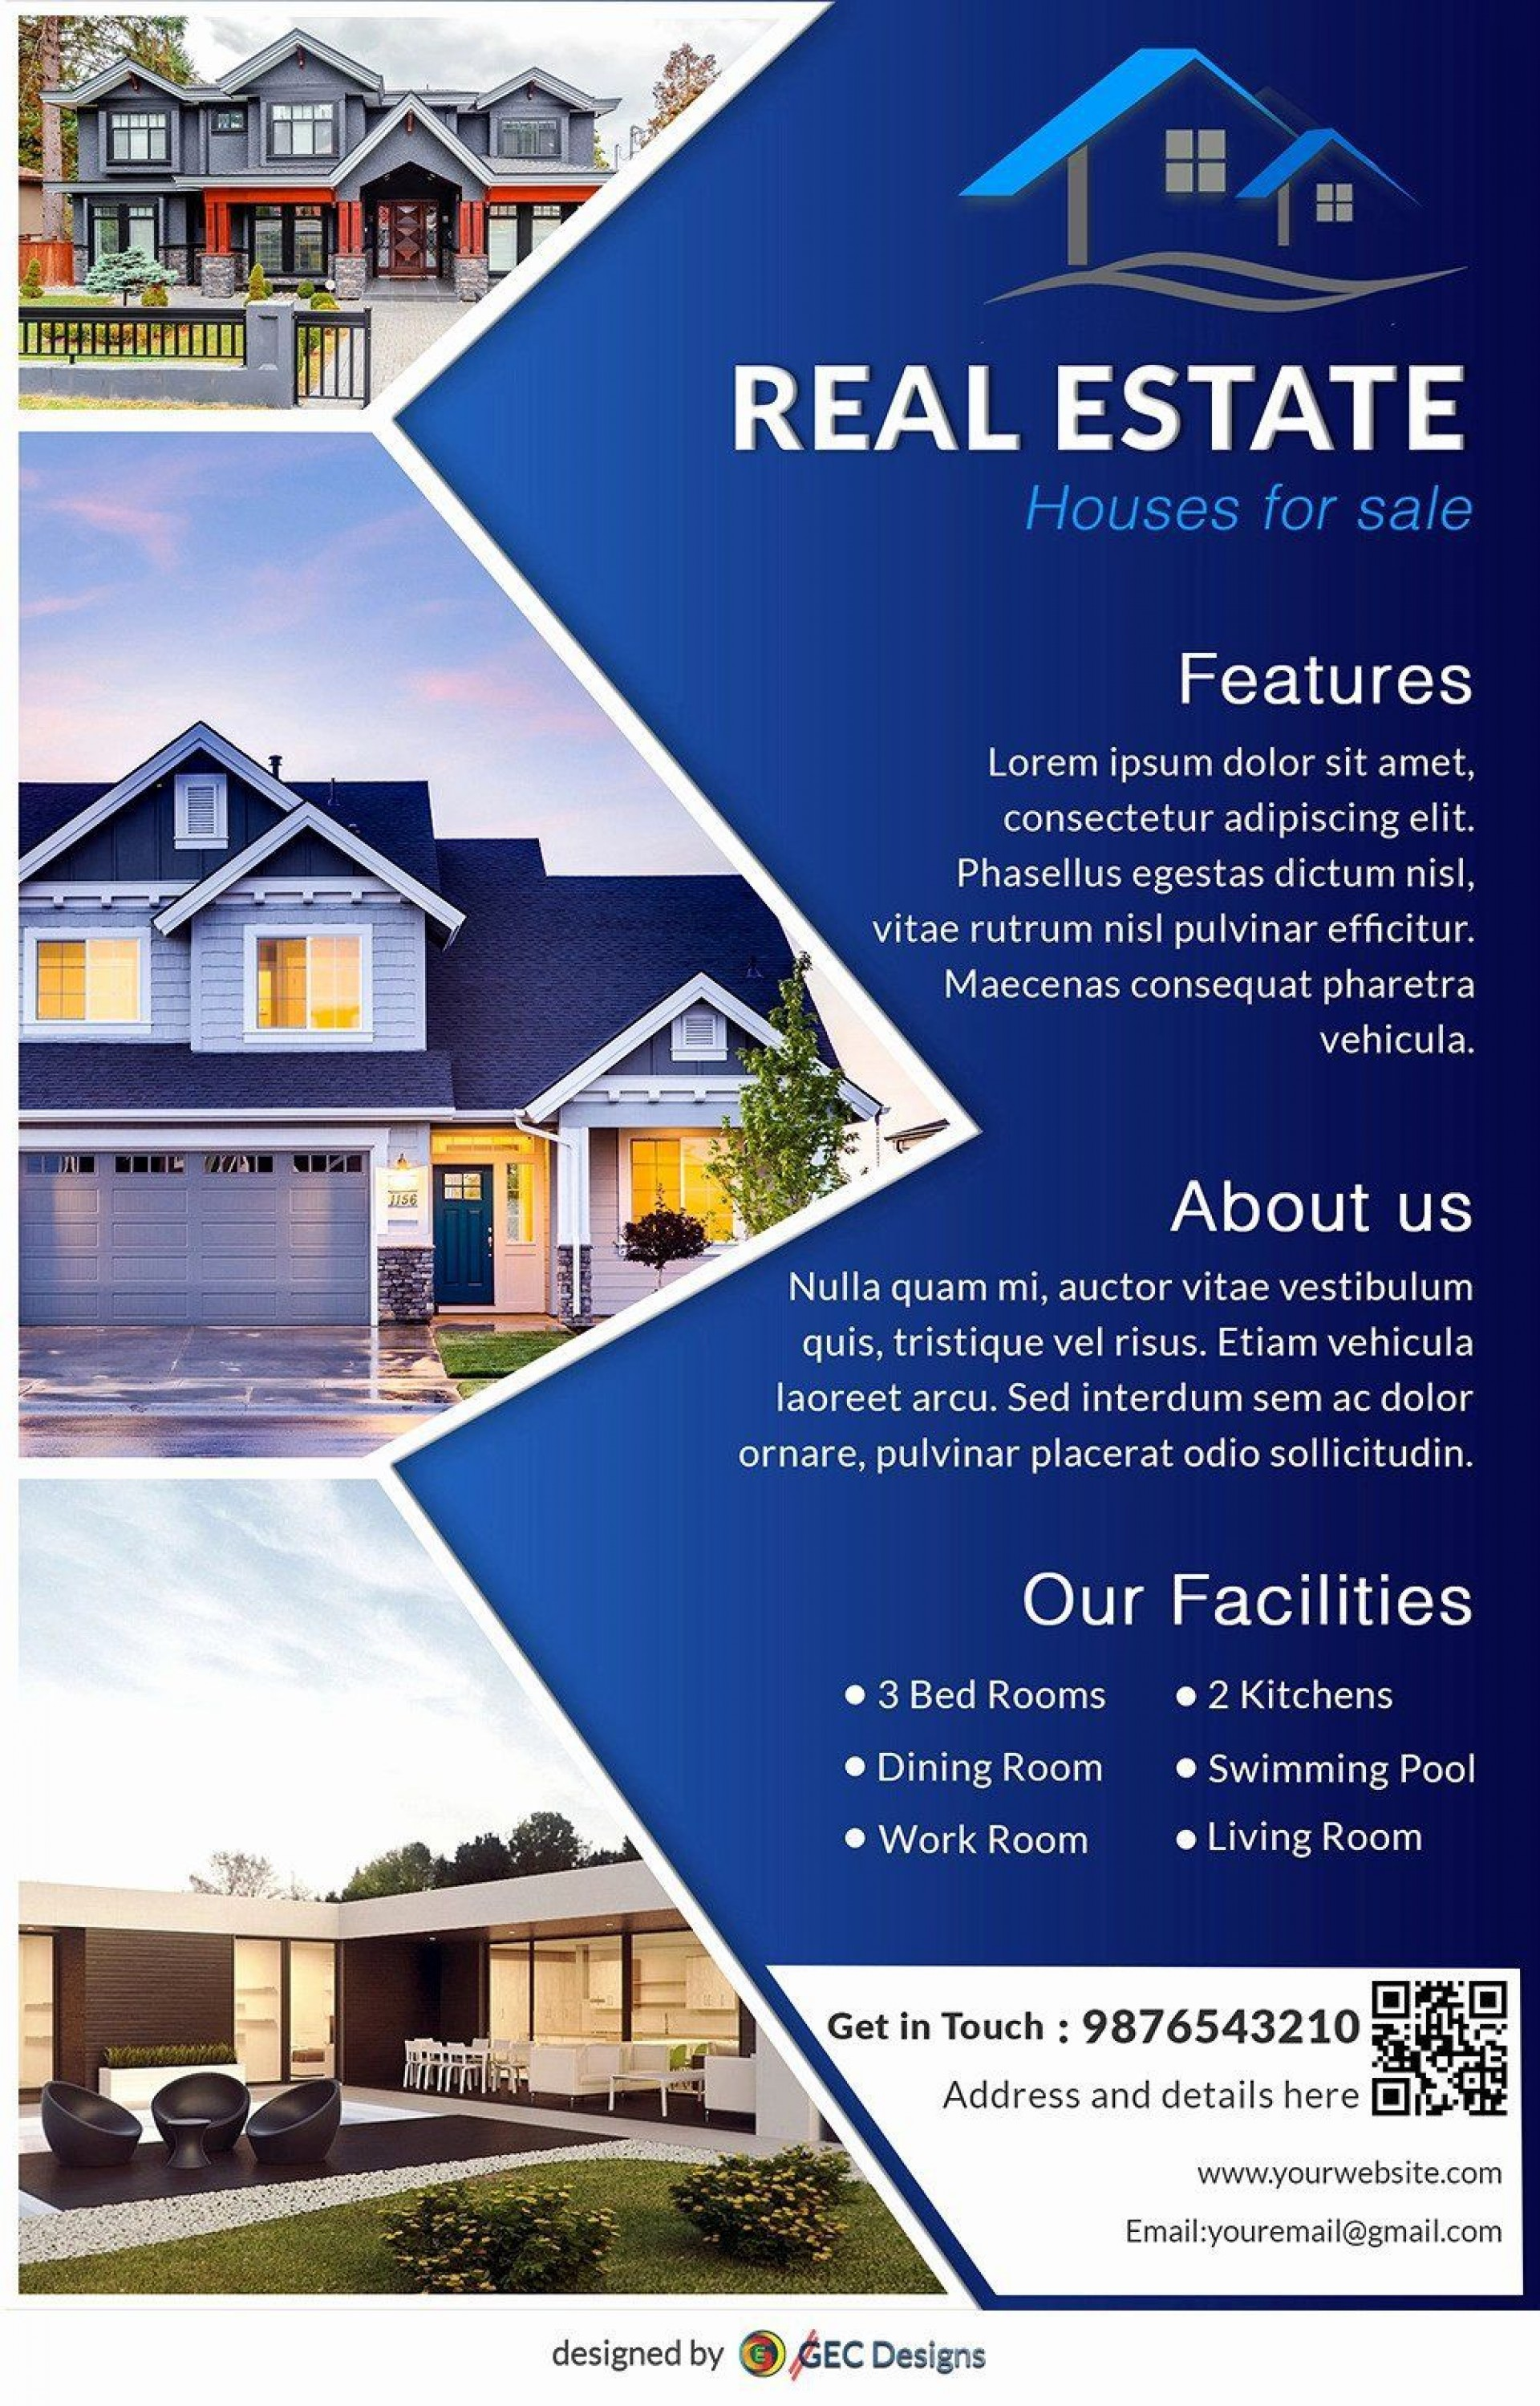 001 Top House For Sale Flyer Template Inspiration  Free Real Estate Example By Owner1920